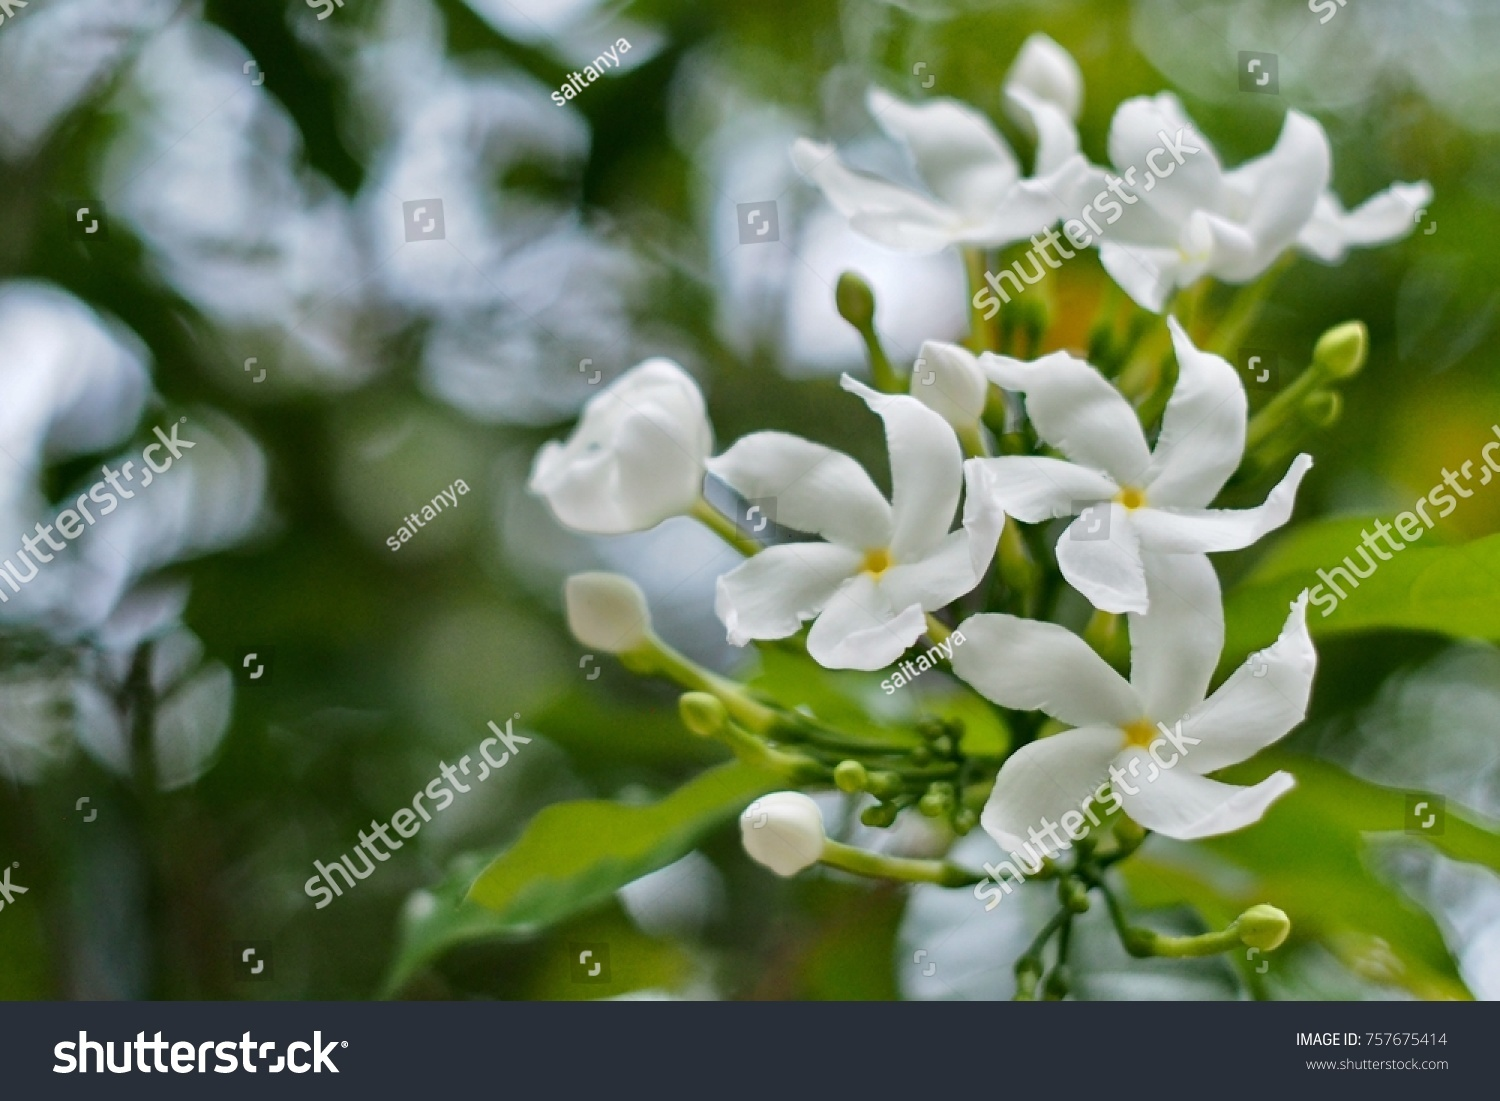 White Flowers Can Mean Reverence Humility Stock Photo Royalty Free